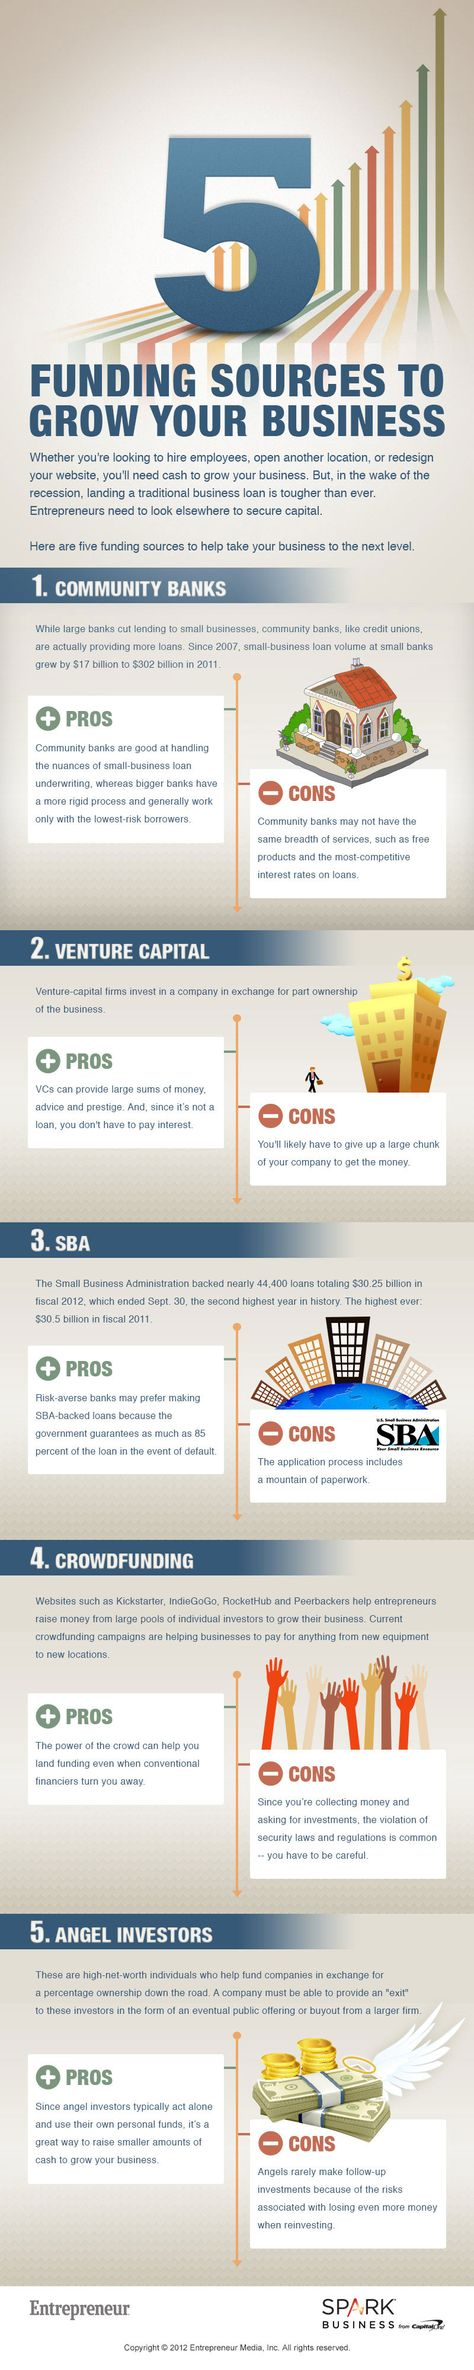 How Other Companies Manage Social Media (Infographic)